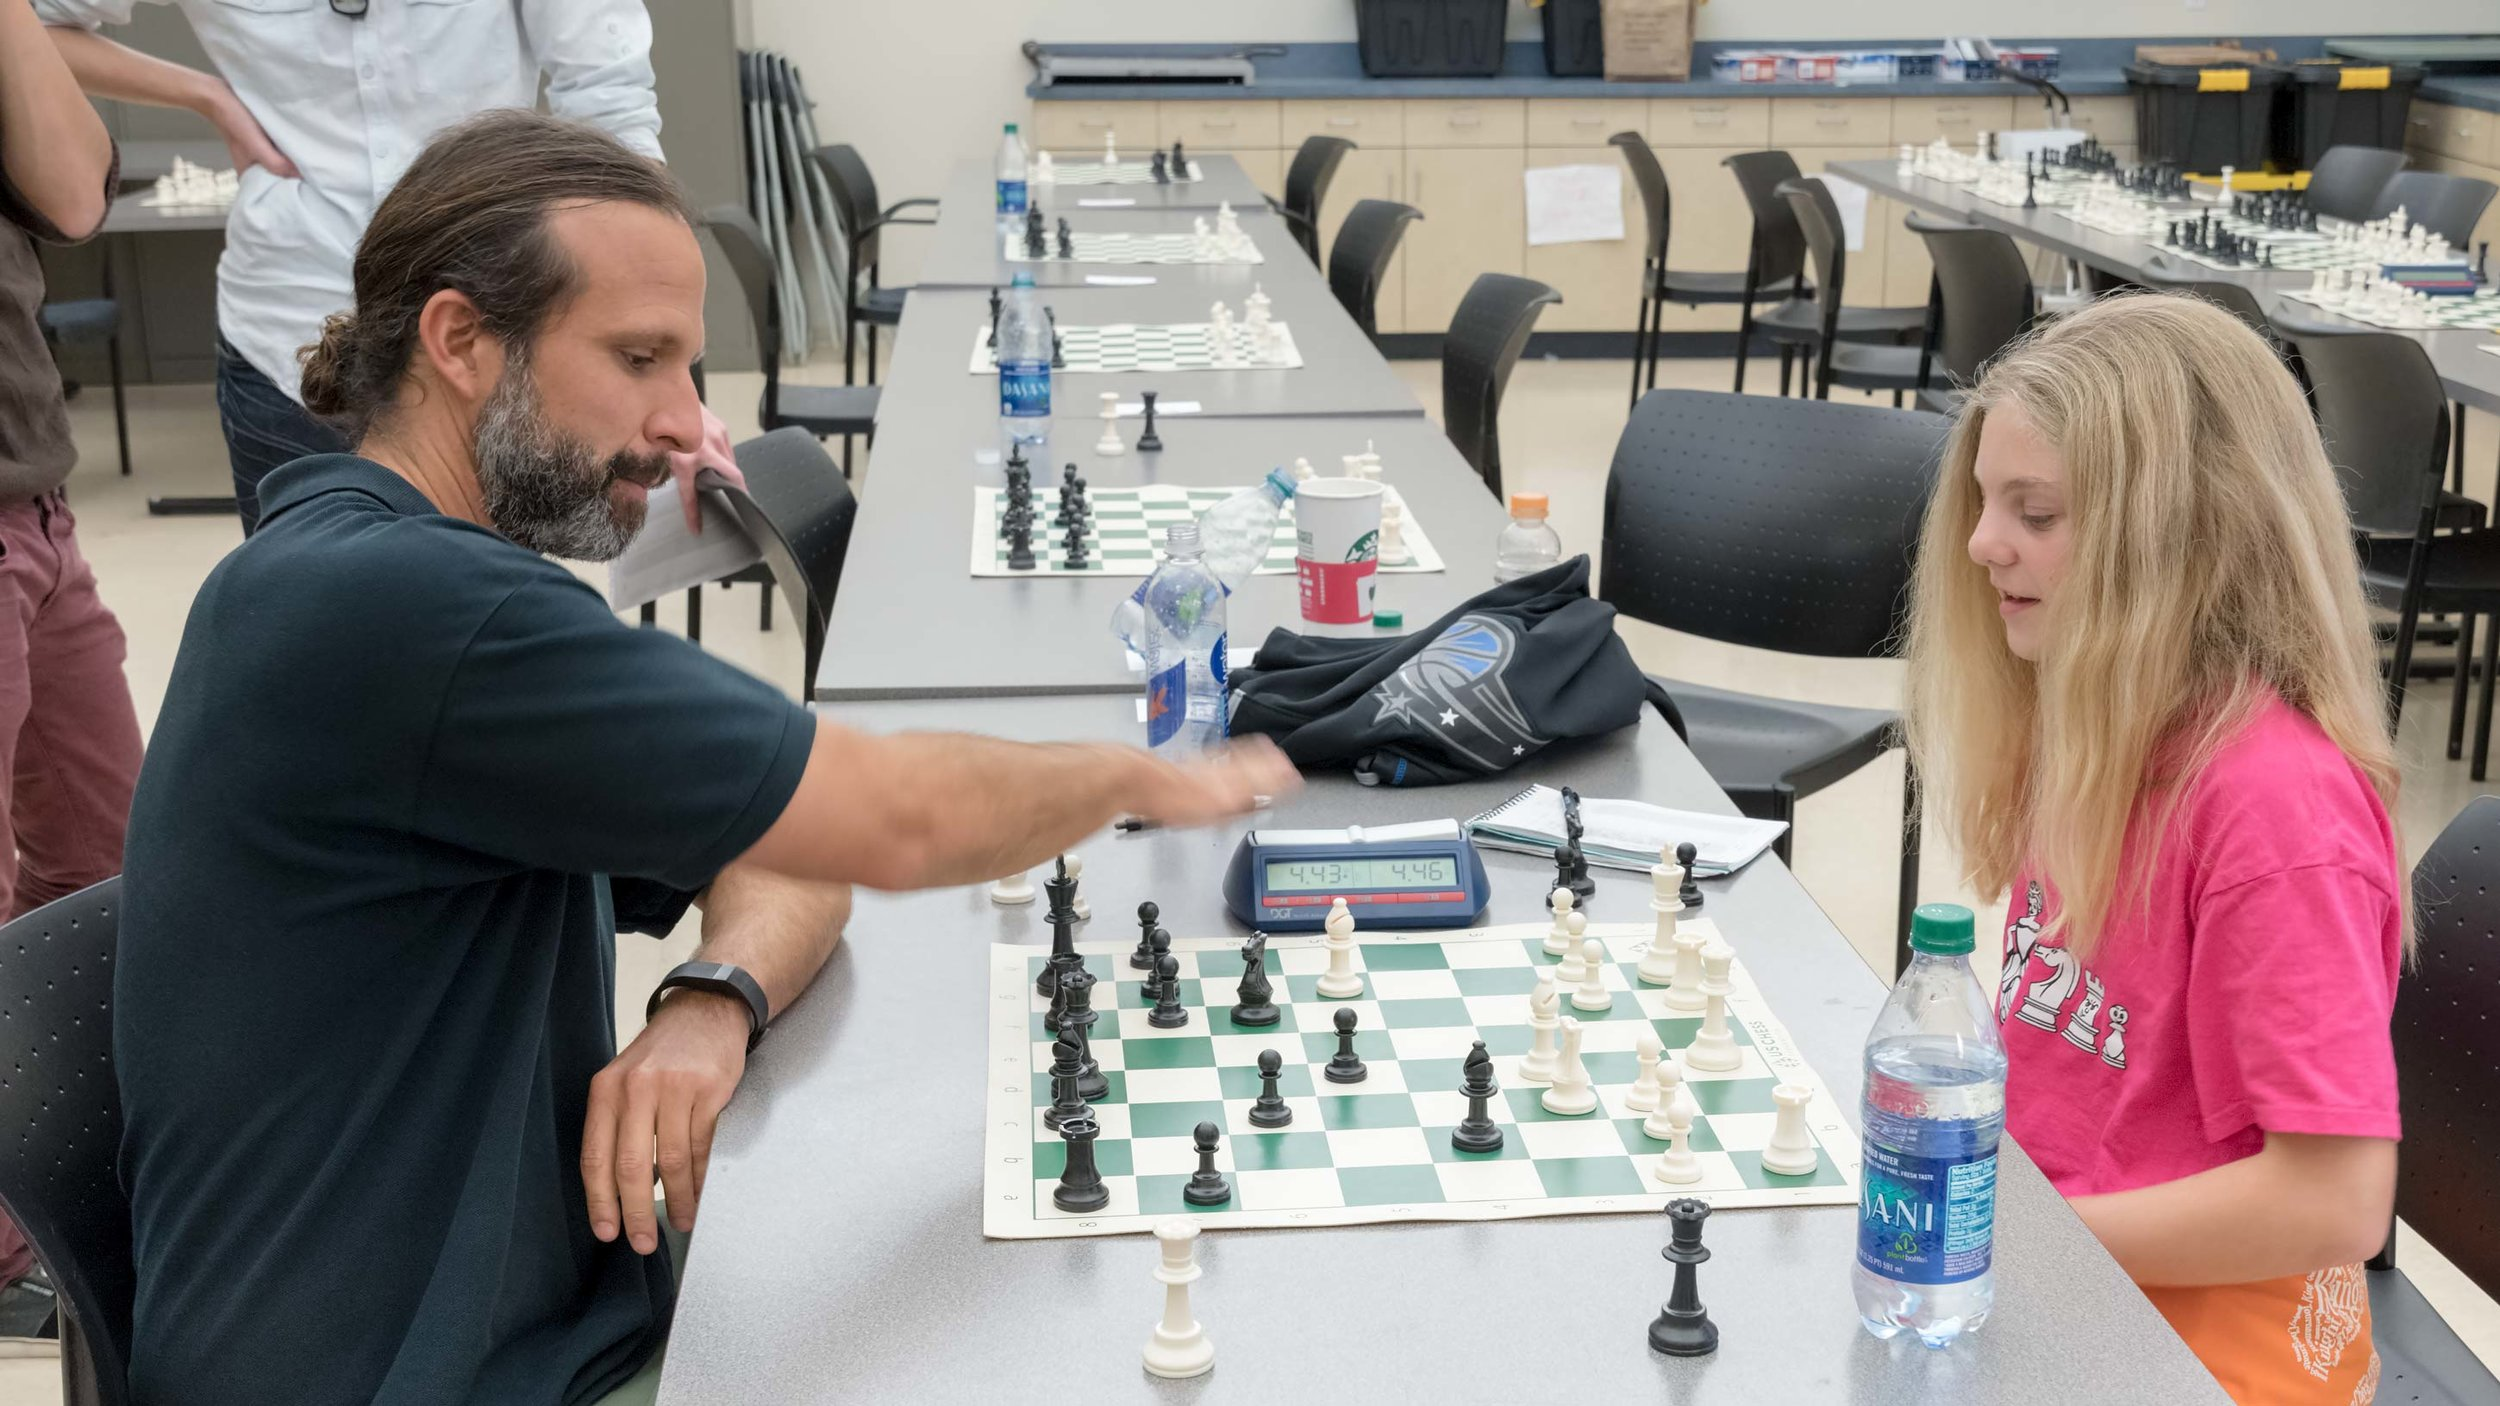 Zoe Zelner (R) (1836)and her long-time chess coach and mentor steven vigil (L) (1905) having some fun with blitz games after the tournament!